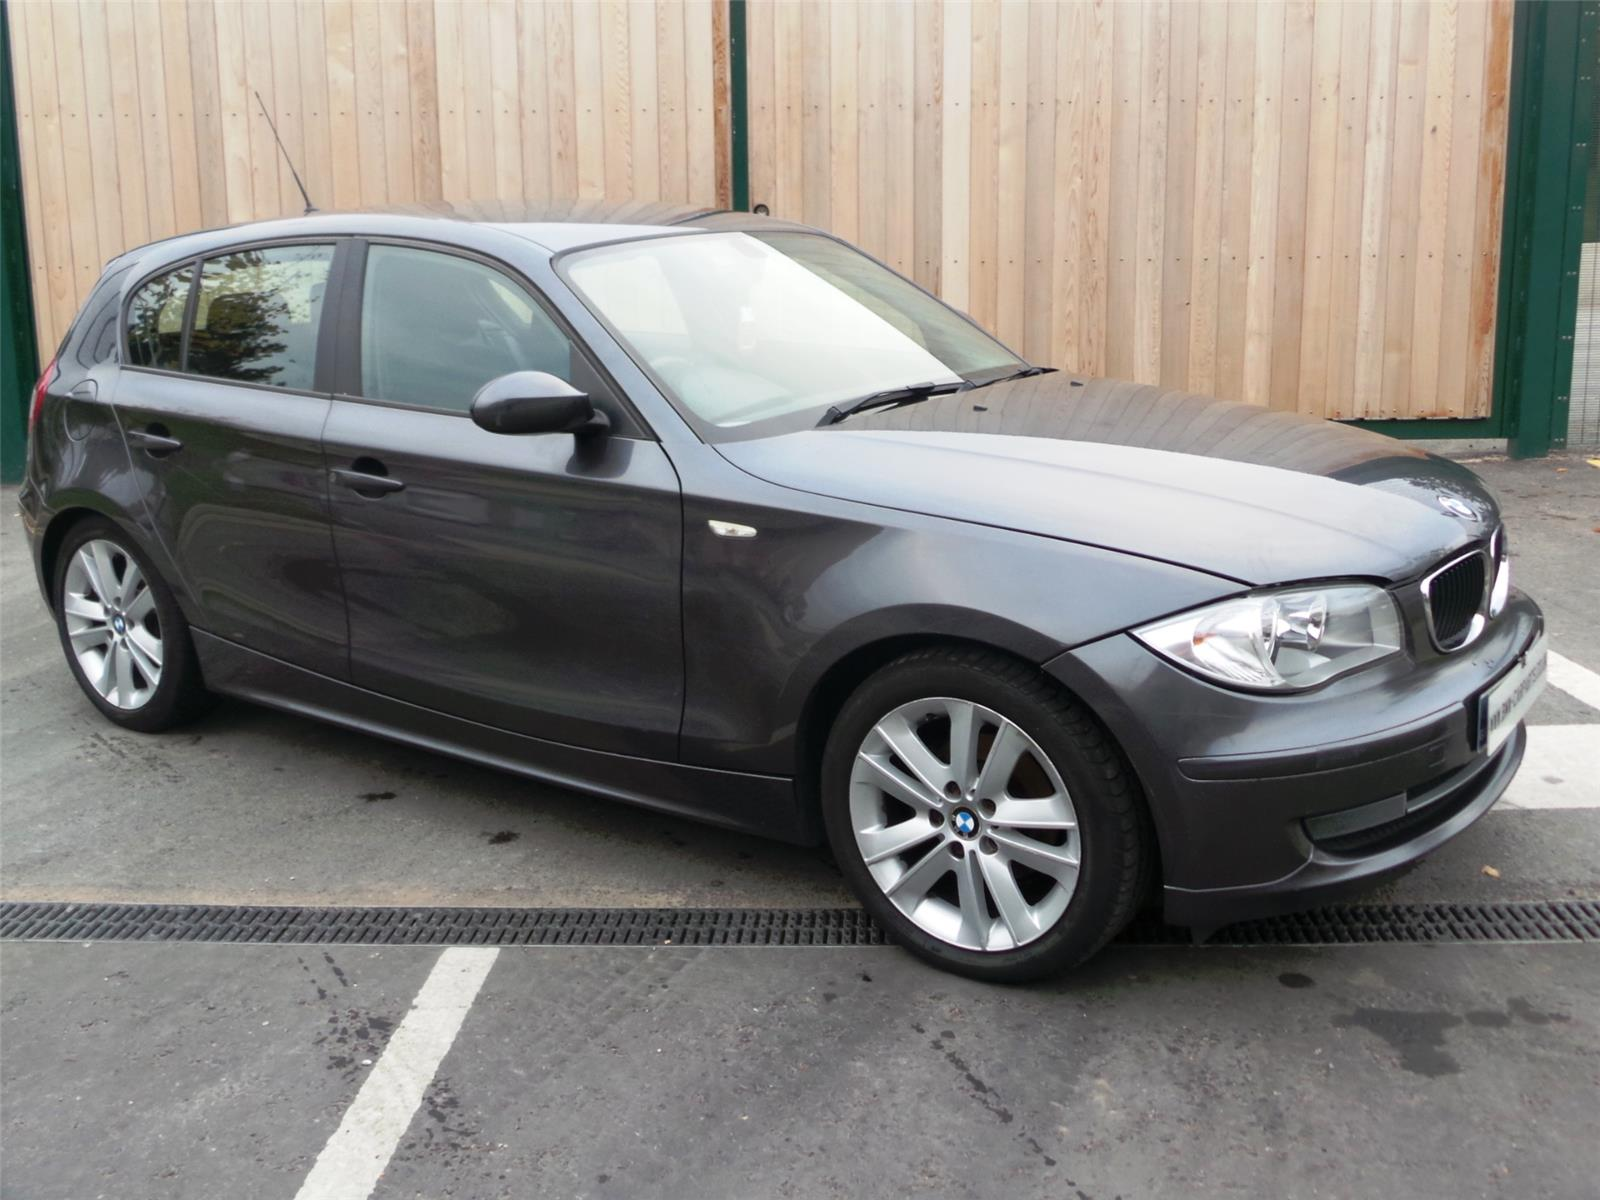 2005 bmw 1 series 116i sport 5 door hatchback petrol manual breaking for used and spare. Black Bedroom Furniture Sets. Home Design Ideas